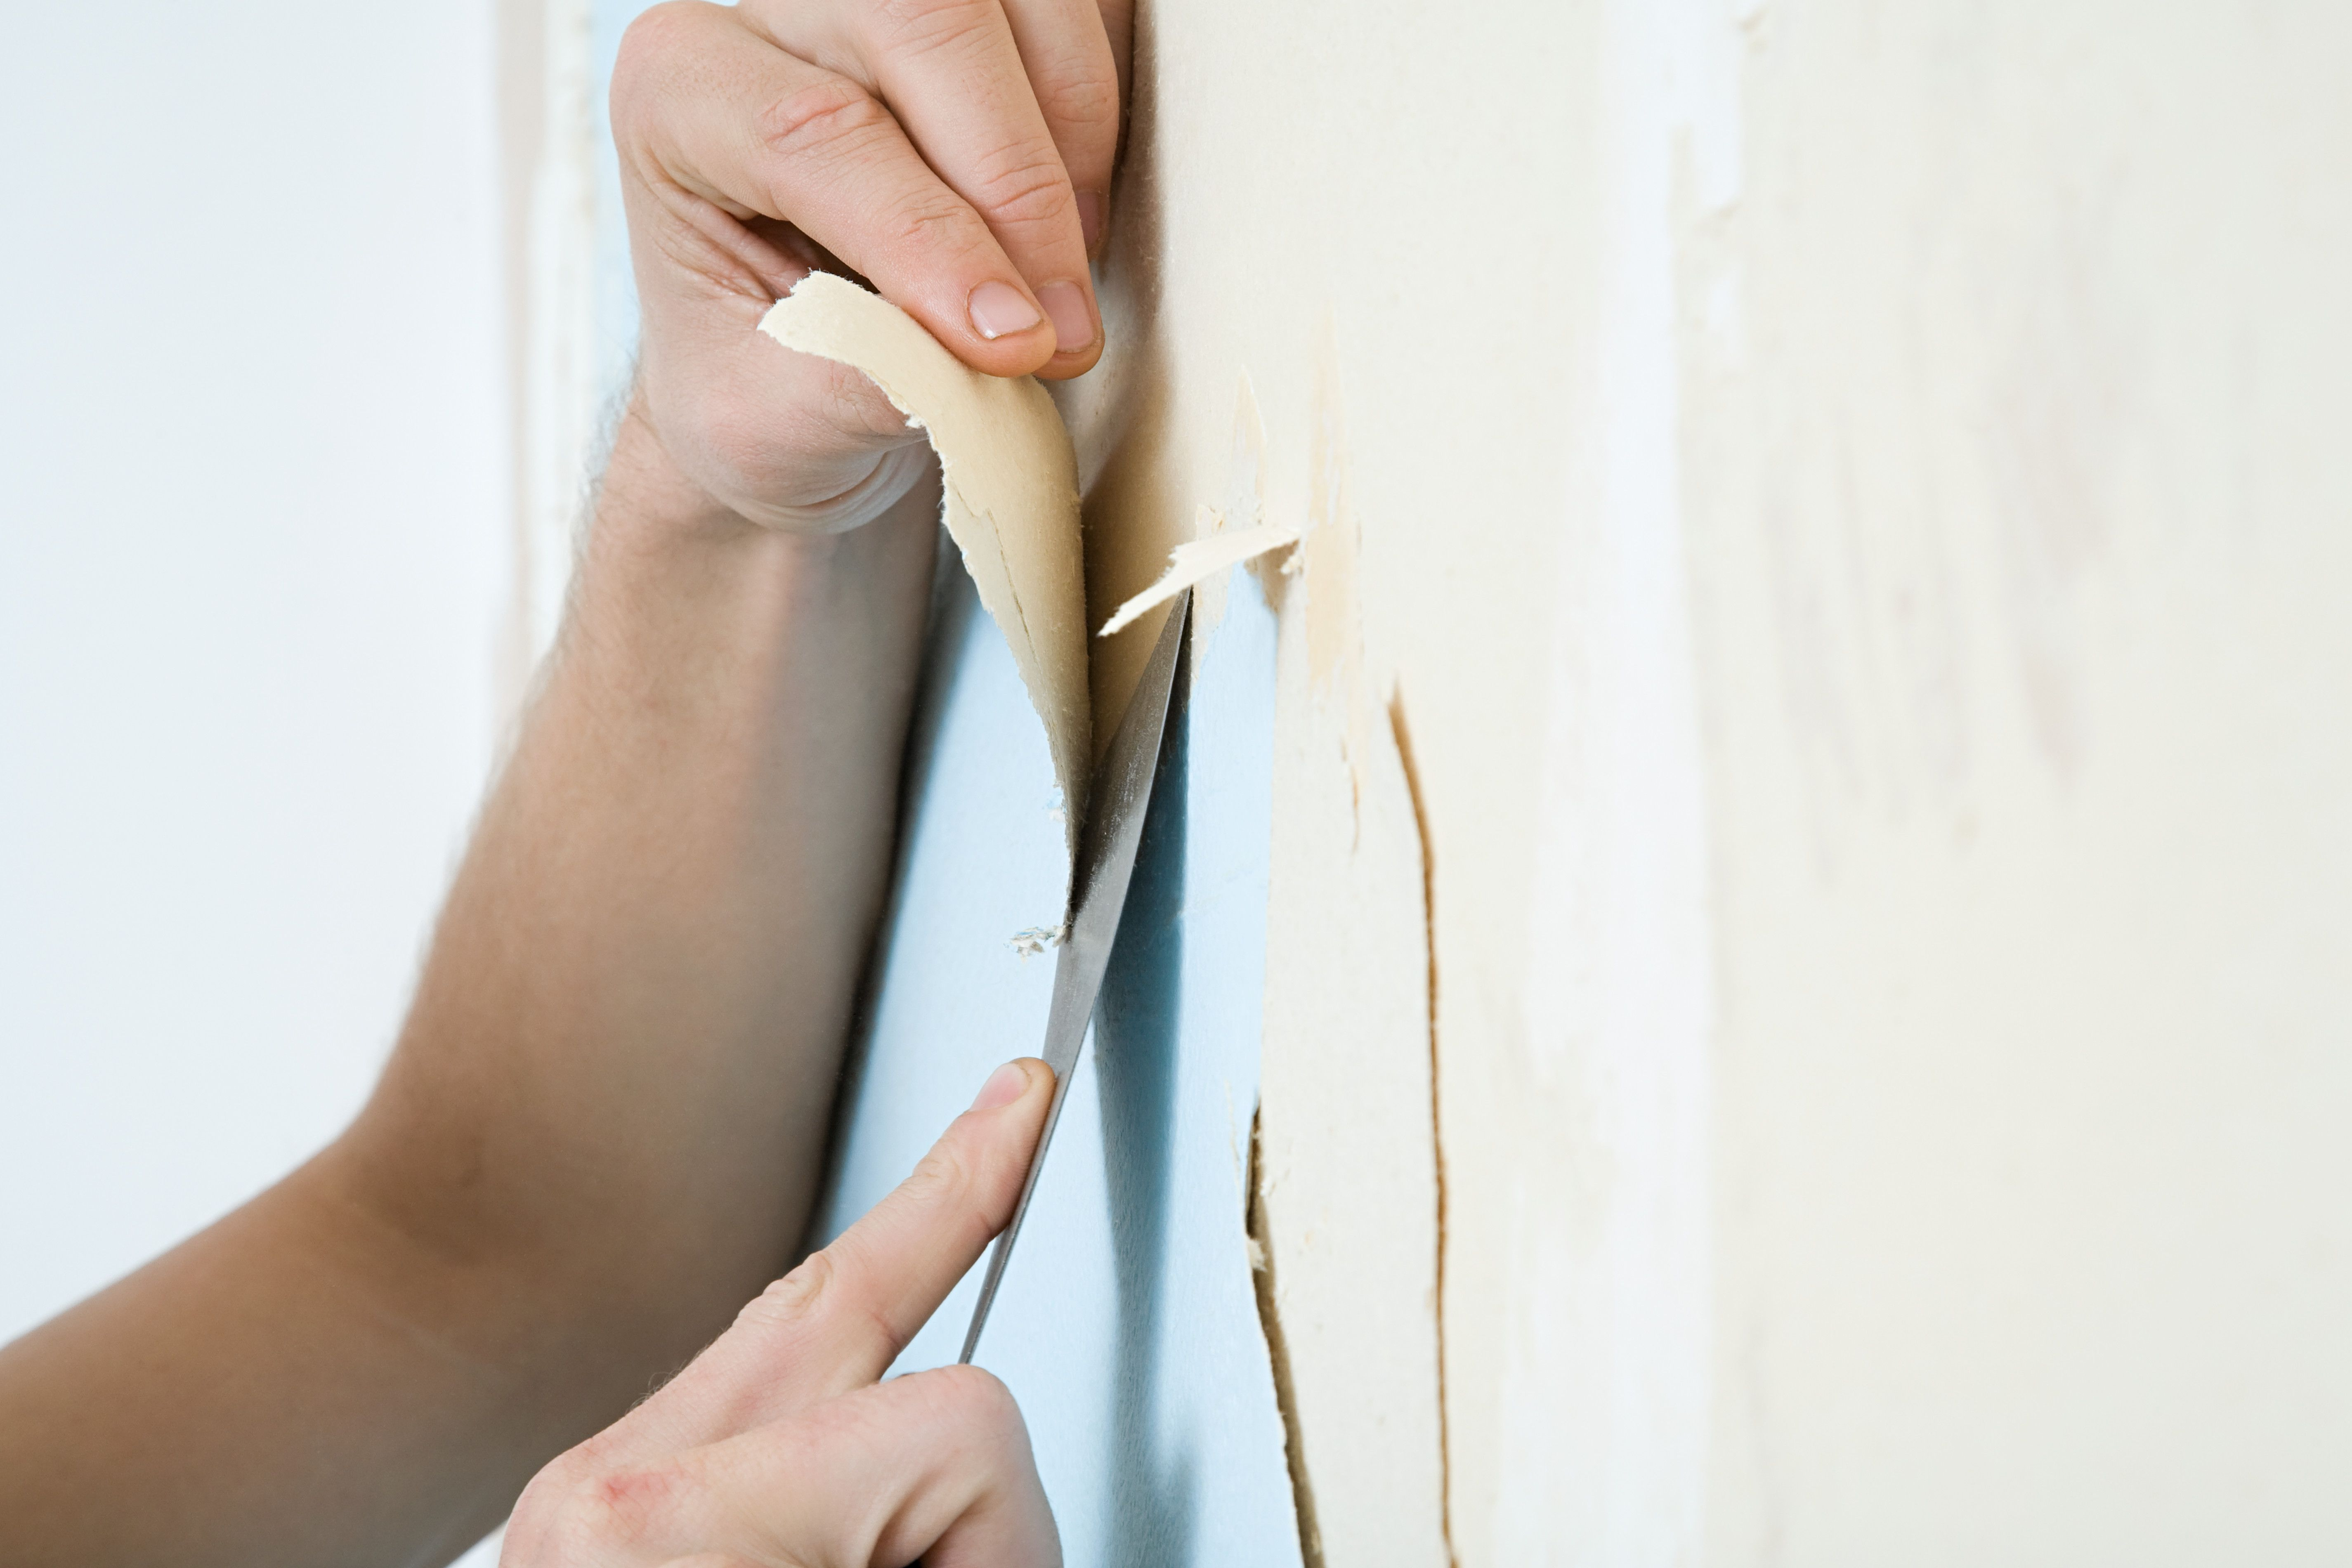 How To Remove Wallpaper Best Ways To Easily Remove